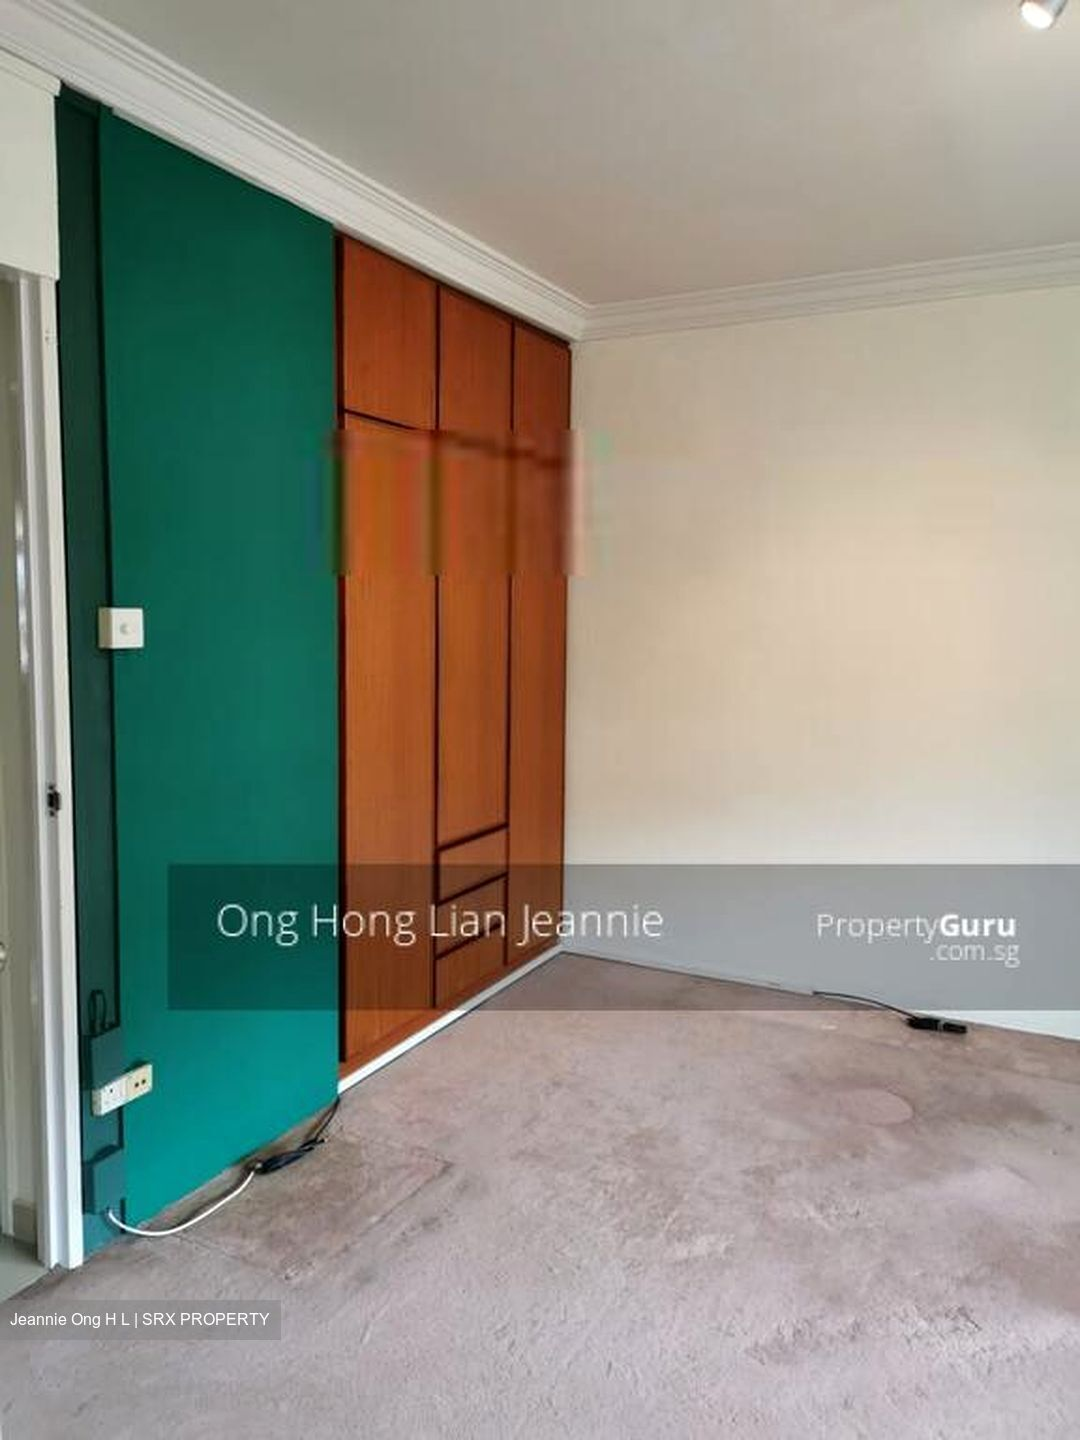 Blk 132 Clarence Lane (Queenstown), HDB 5 Rooms #272266951